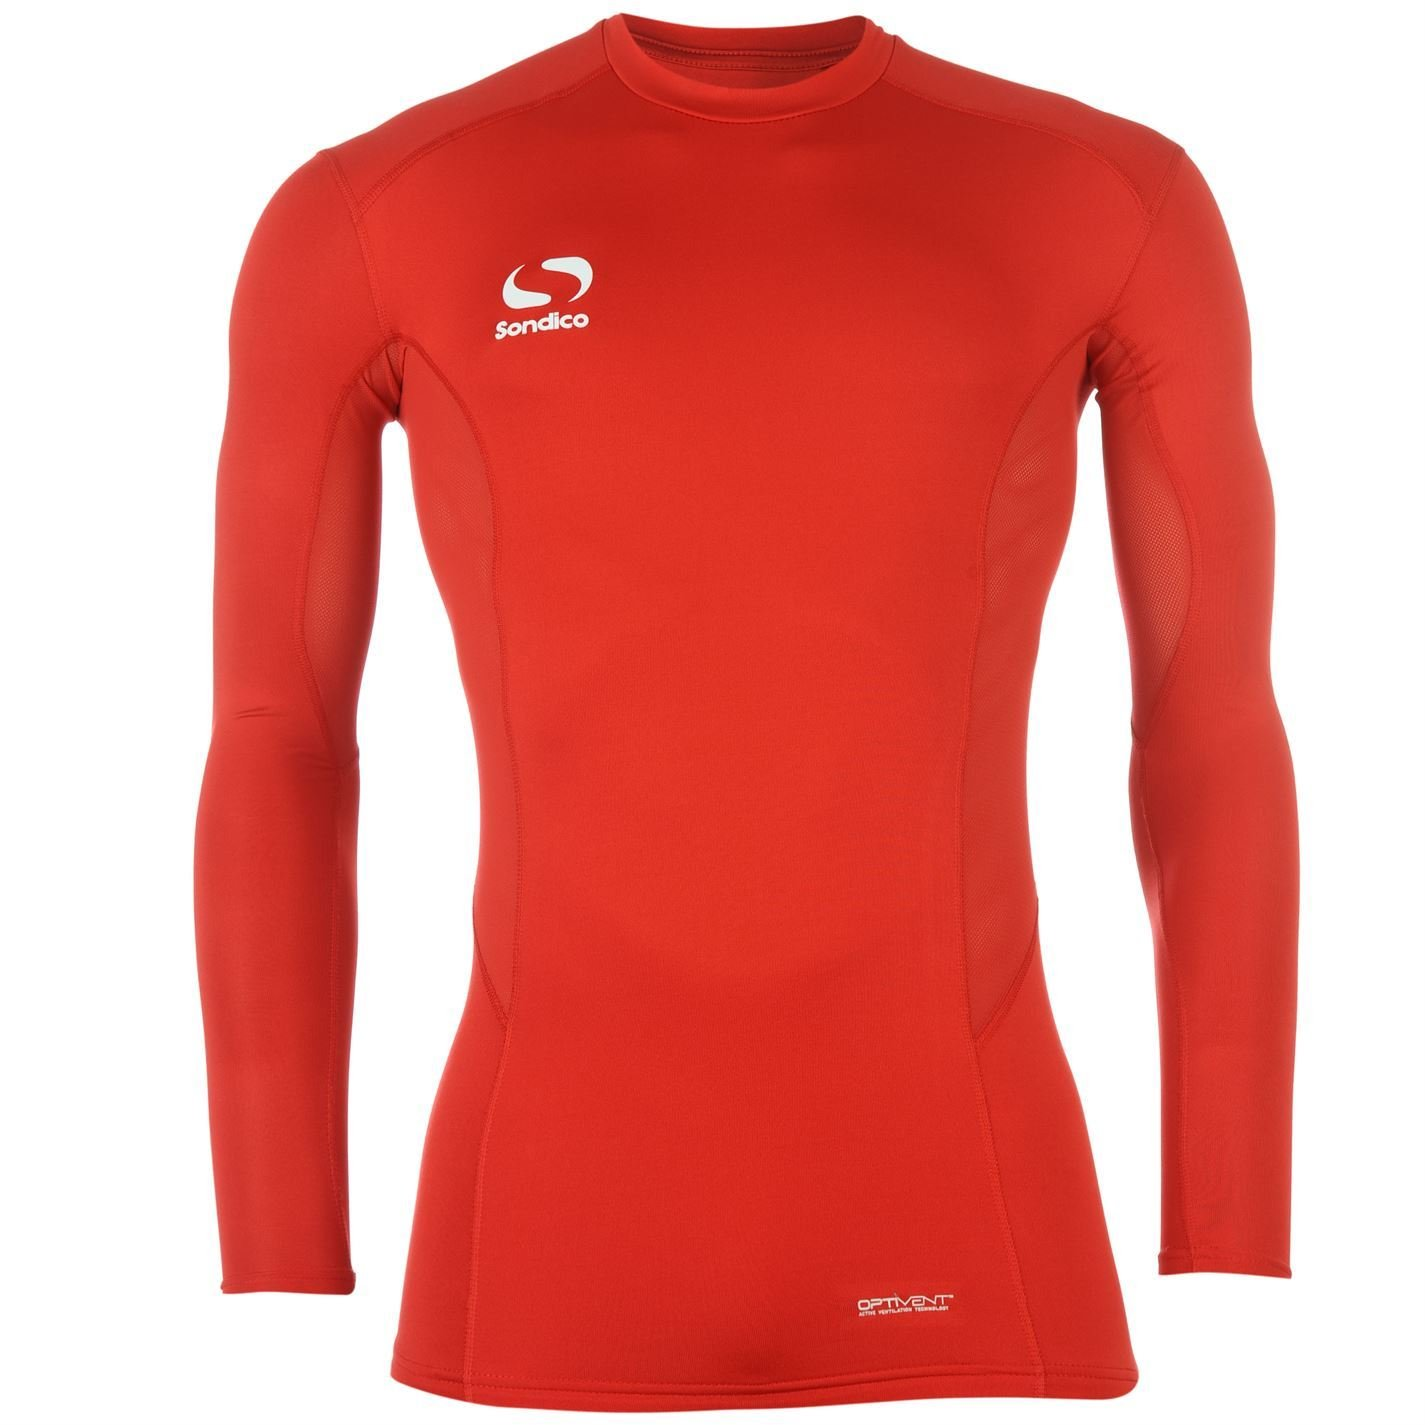 Sondico Mens Core Baselayer Top